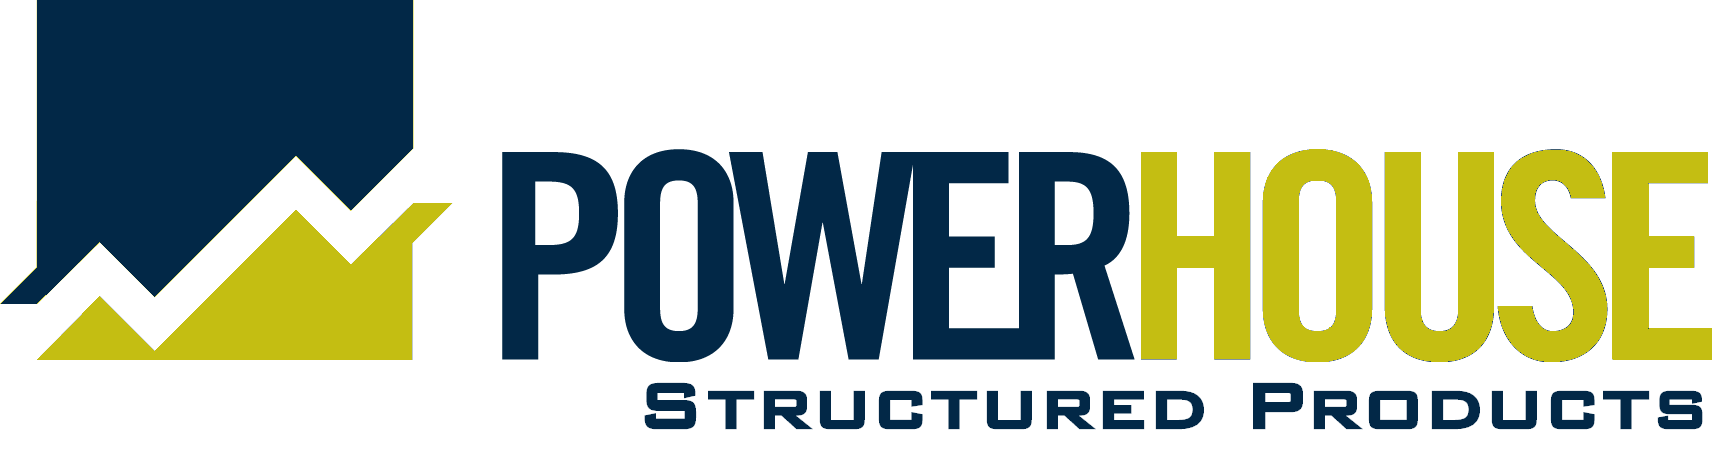 powerhouseSP_logo_BankGothicBold_bottom